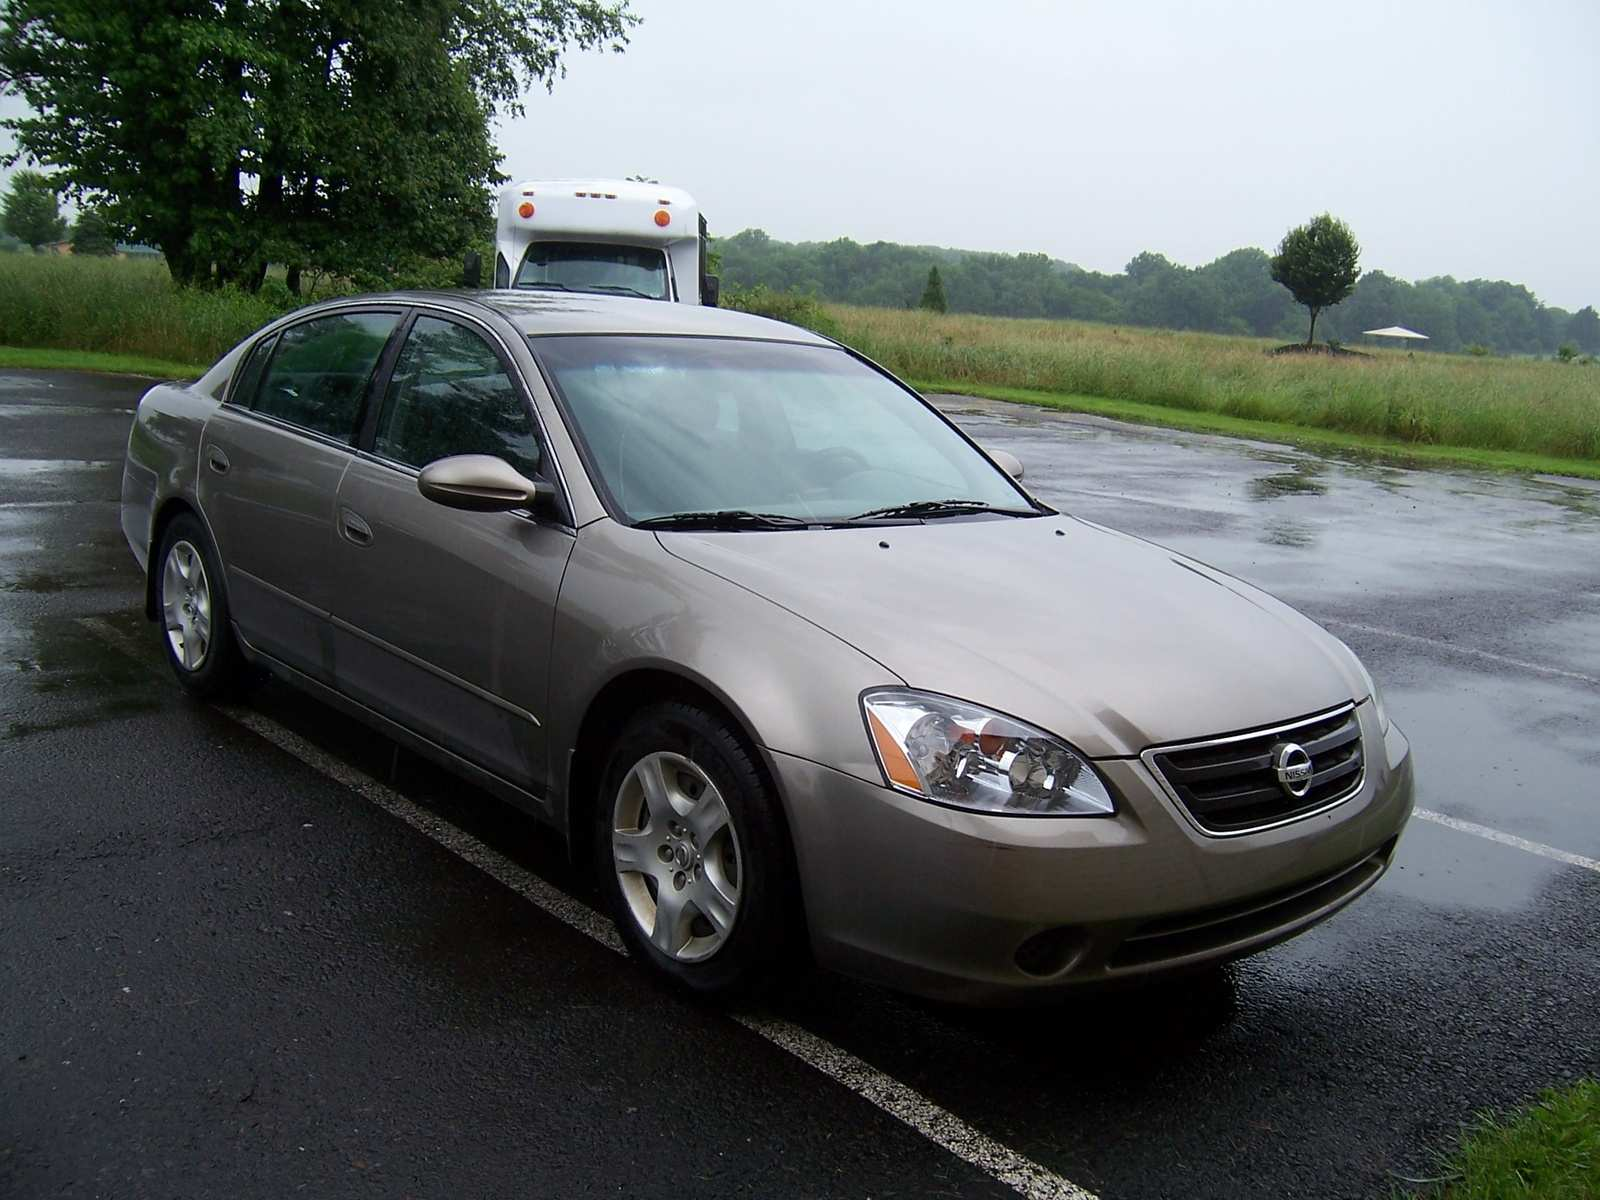 56 Best 2003 Nissan Altima 2 5 Model